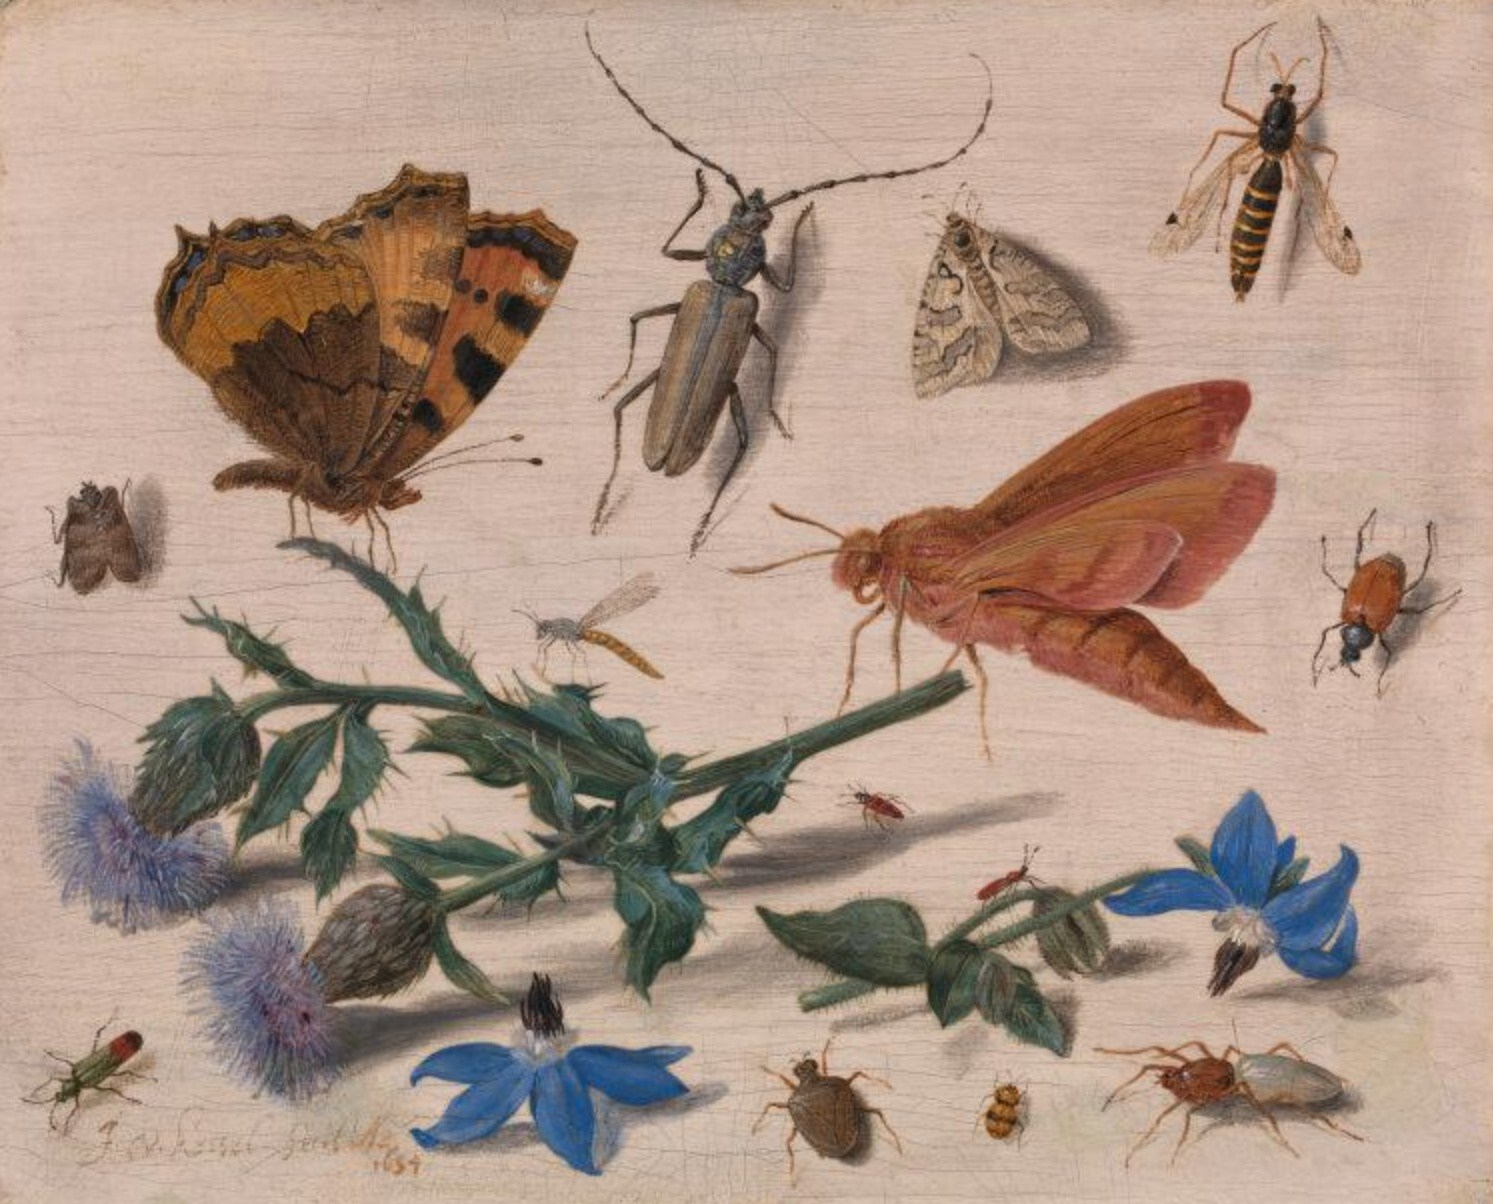 jan-van-kessel-the-elder-insects-with-creeping-thistle-and-borage.4